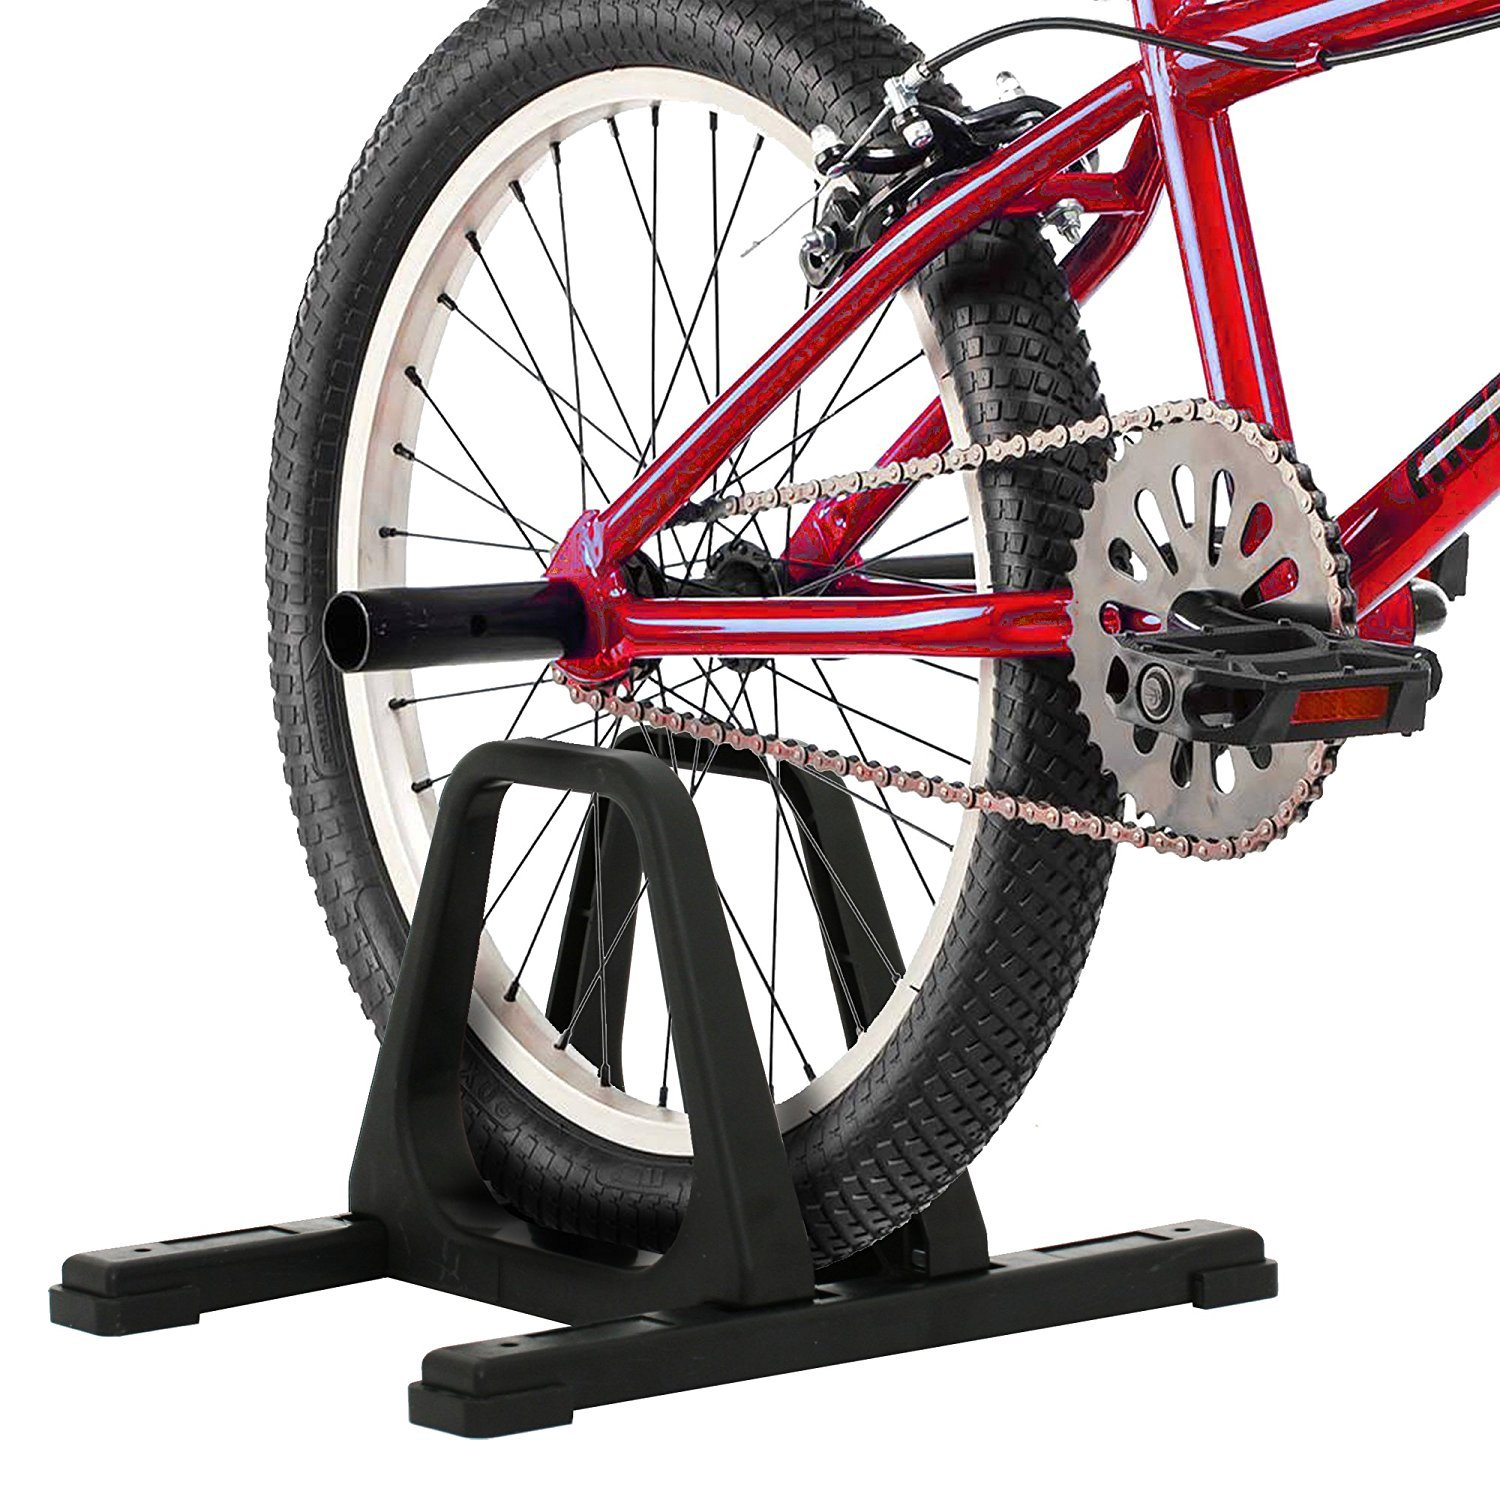 RAD Cycle Products Bike Stand Bicycle Park Portable Floor Rack for Smaller Bikes 1130 RAD Bike Stand